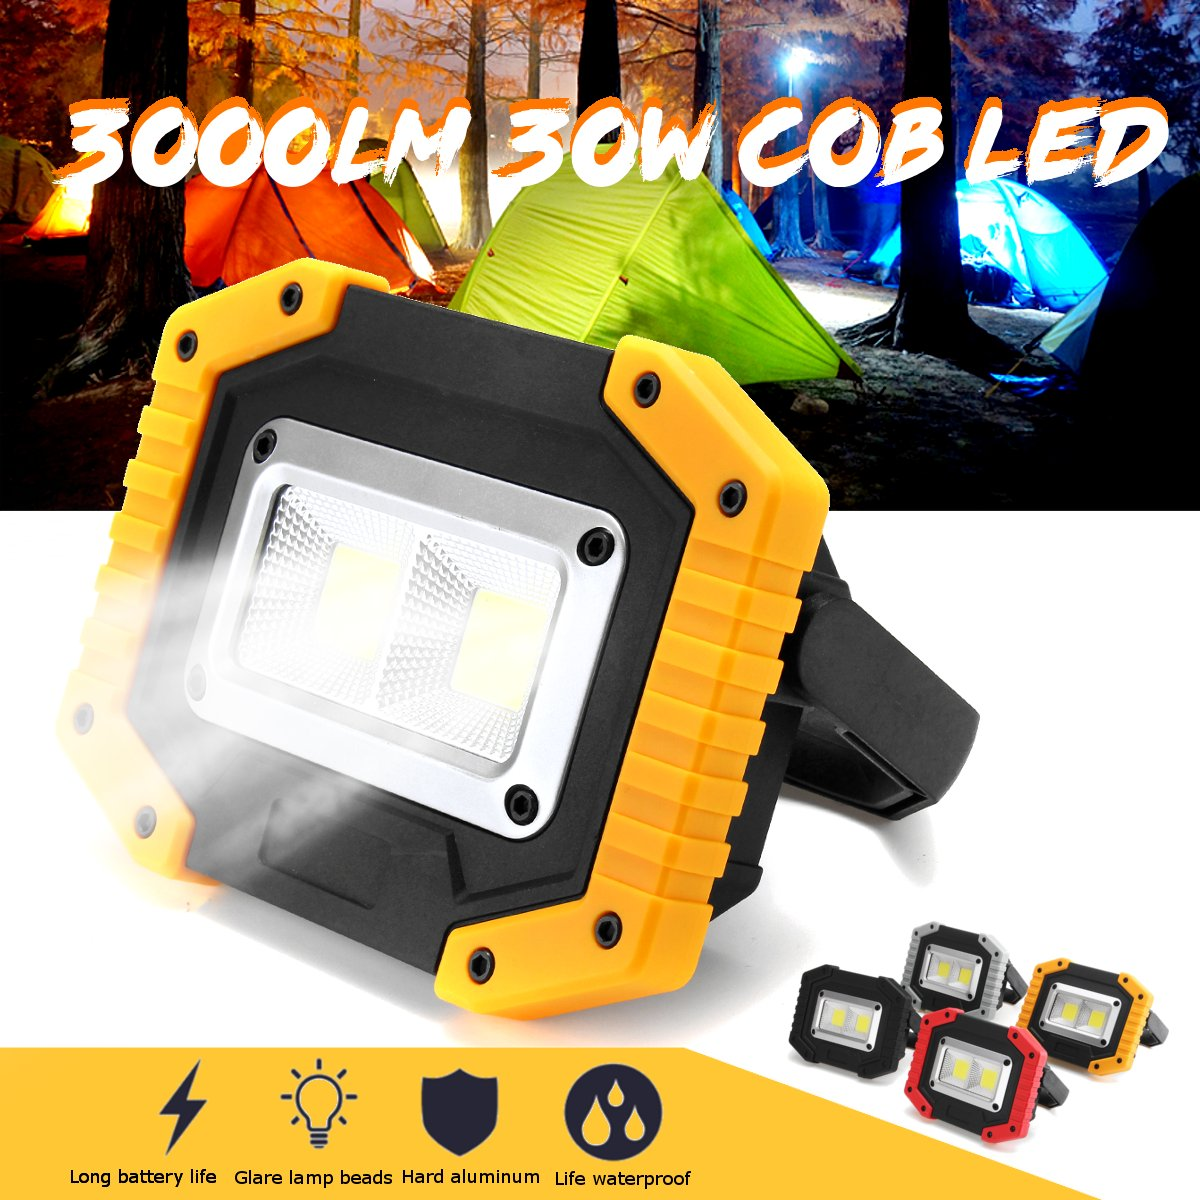 30W 2 COB Work Light USB Charging Waterproof Floodlight 18650 Rechargeable Battery Powered Portable Led Searchlight Camping